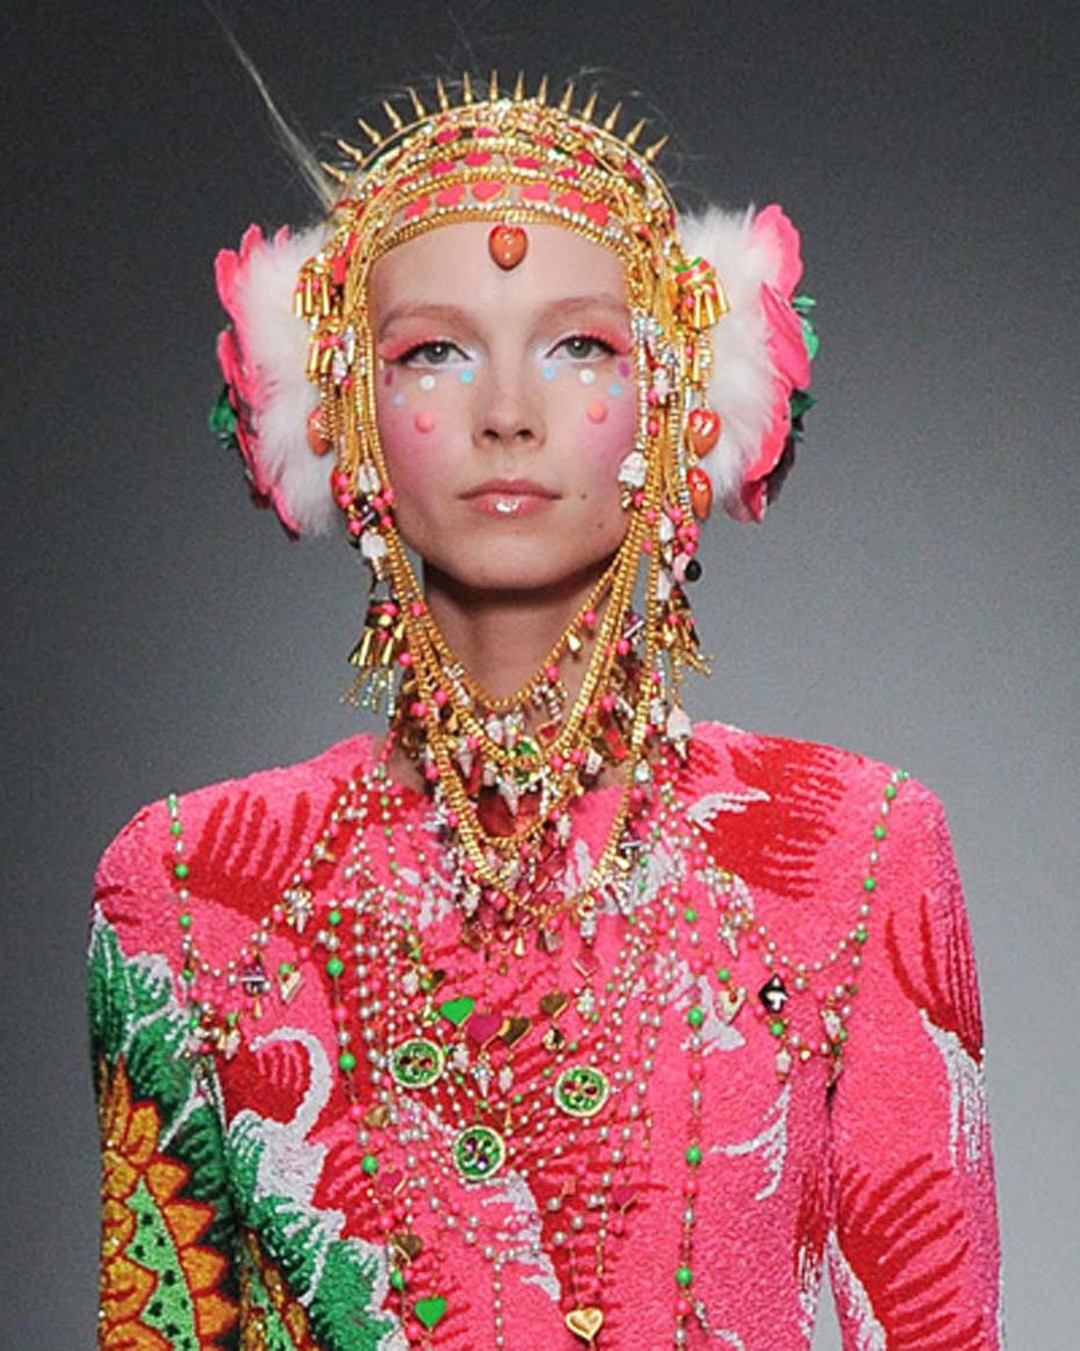 A model wearing jewels from Amrapali and Manish Arora's fourth collaborative collection during Paris Fashion Week.